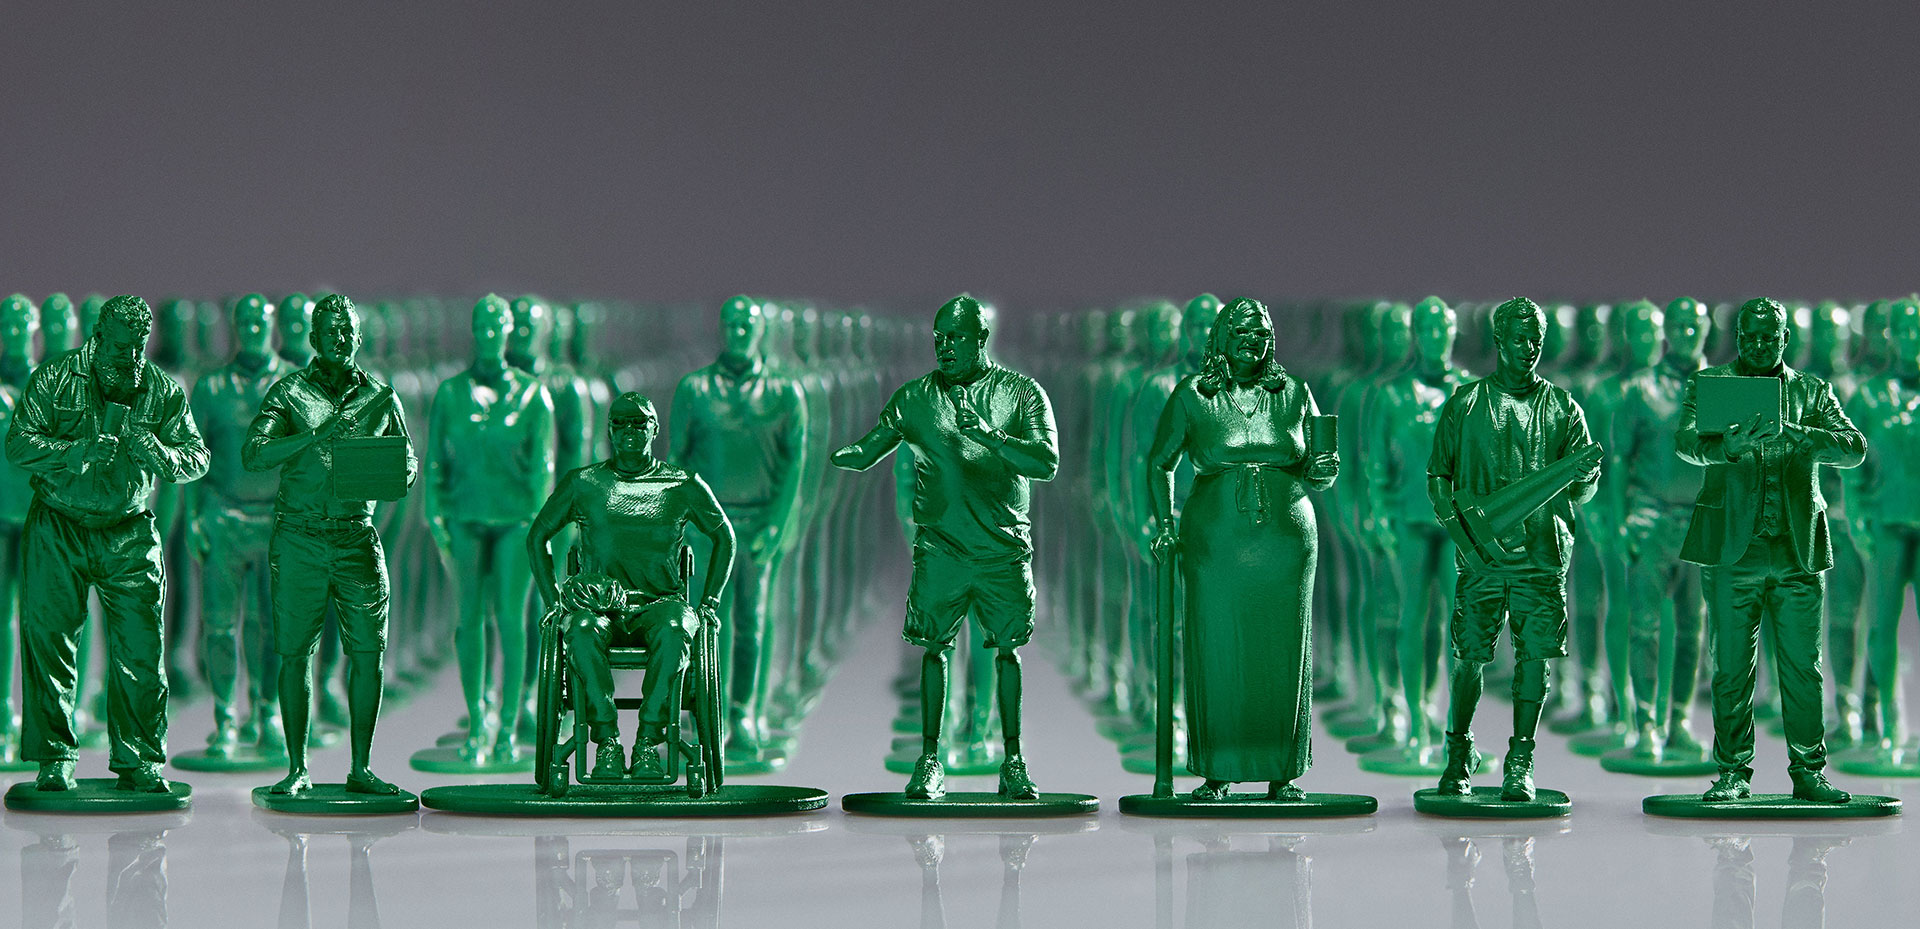 McCann Made 40,000 Toy Soldiers Based on Real Wounded Veterans